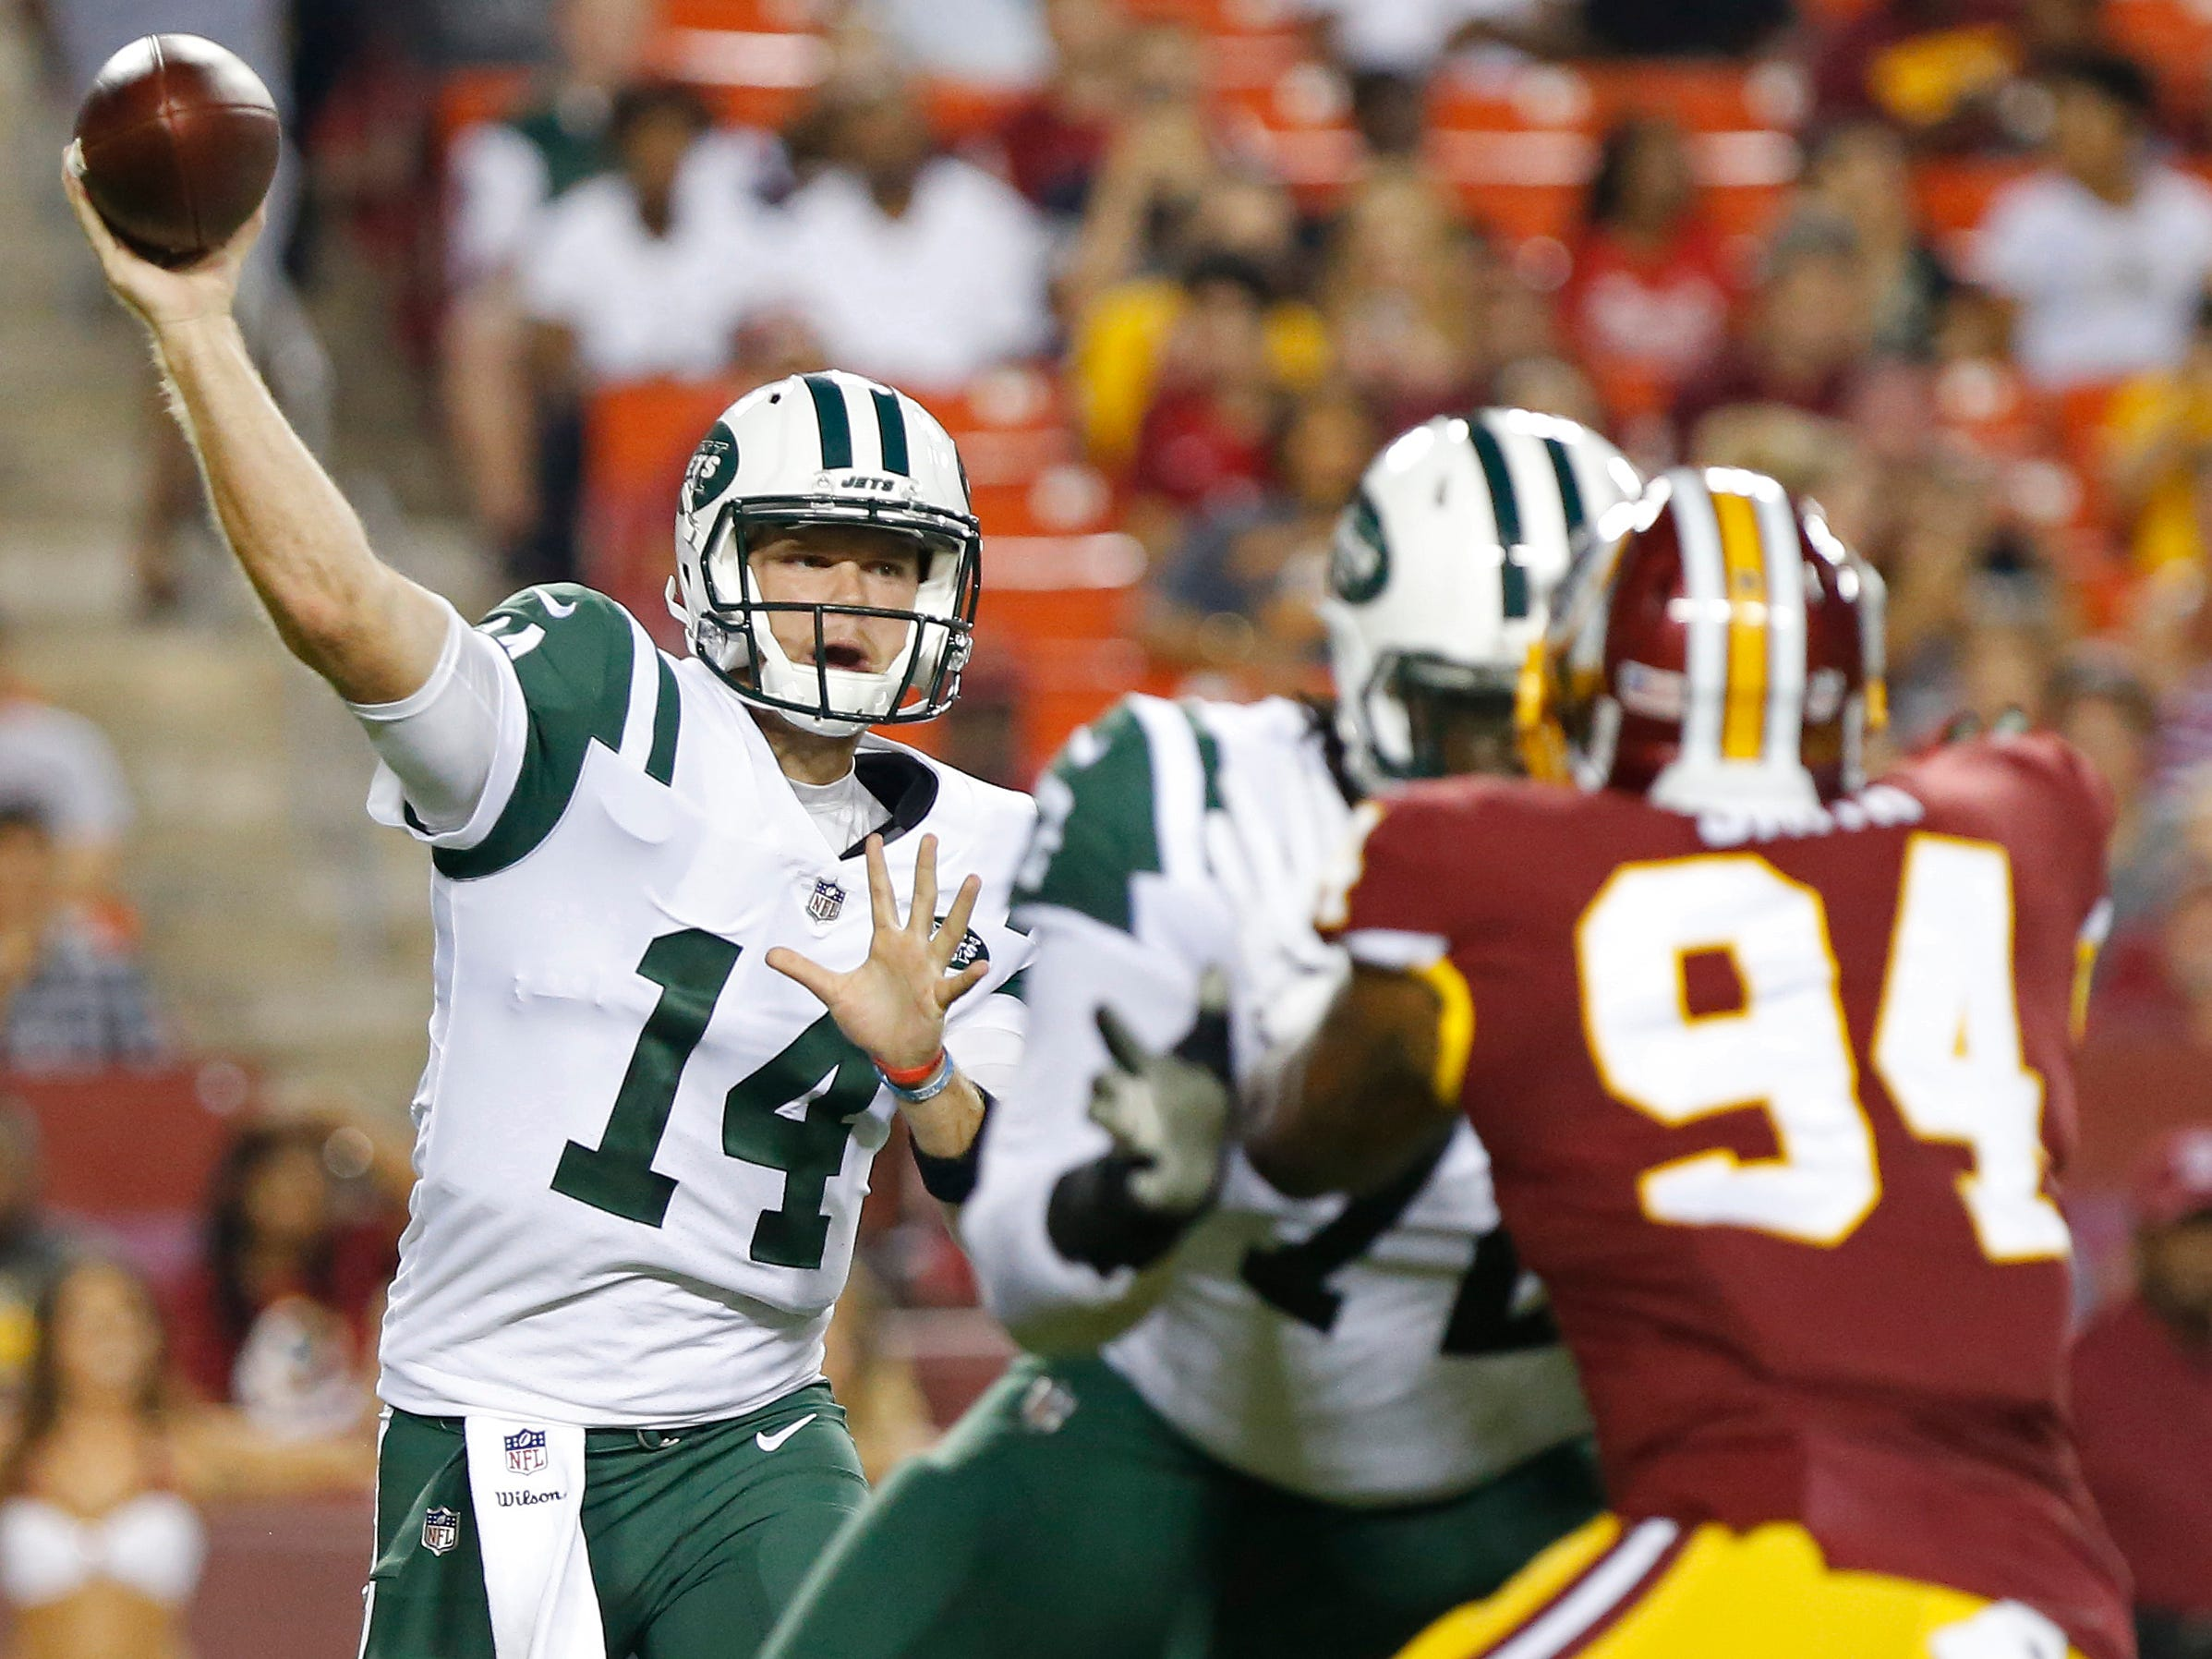 New York Jets quarterback Sam Darnold passes the ball as Washington Redskins linebacker Preston Smith defends in the first quarter at FedExField.